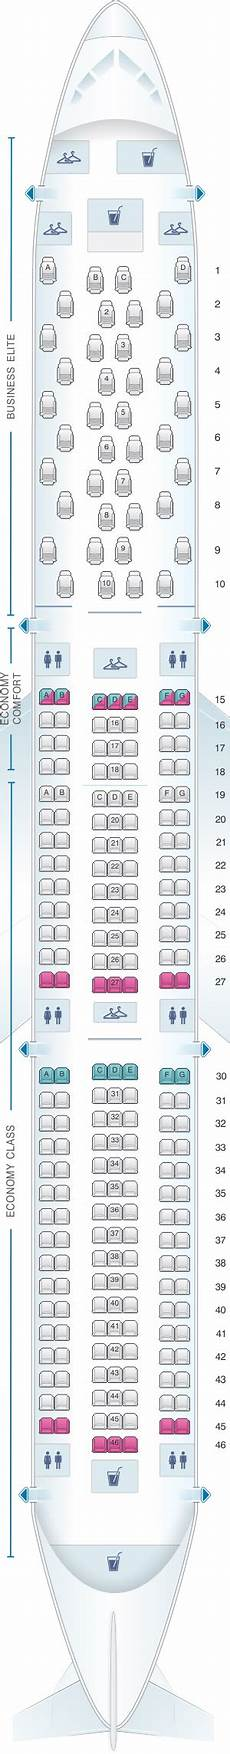 Boeing 767 400 Seating Chart Seat Map Delta Airlines Boeing B767 400er 76d